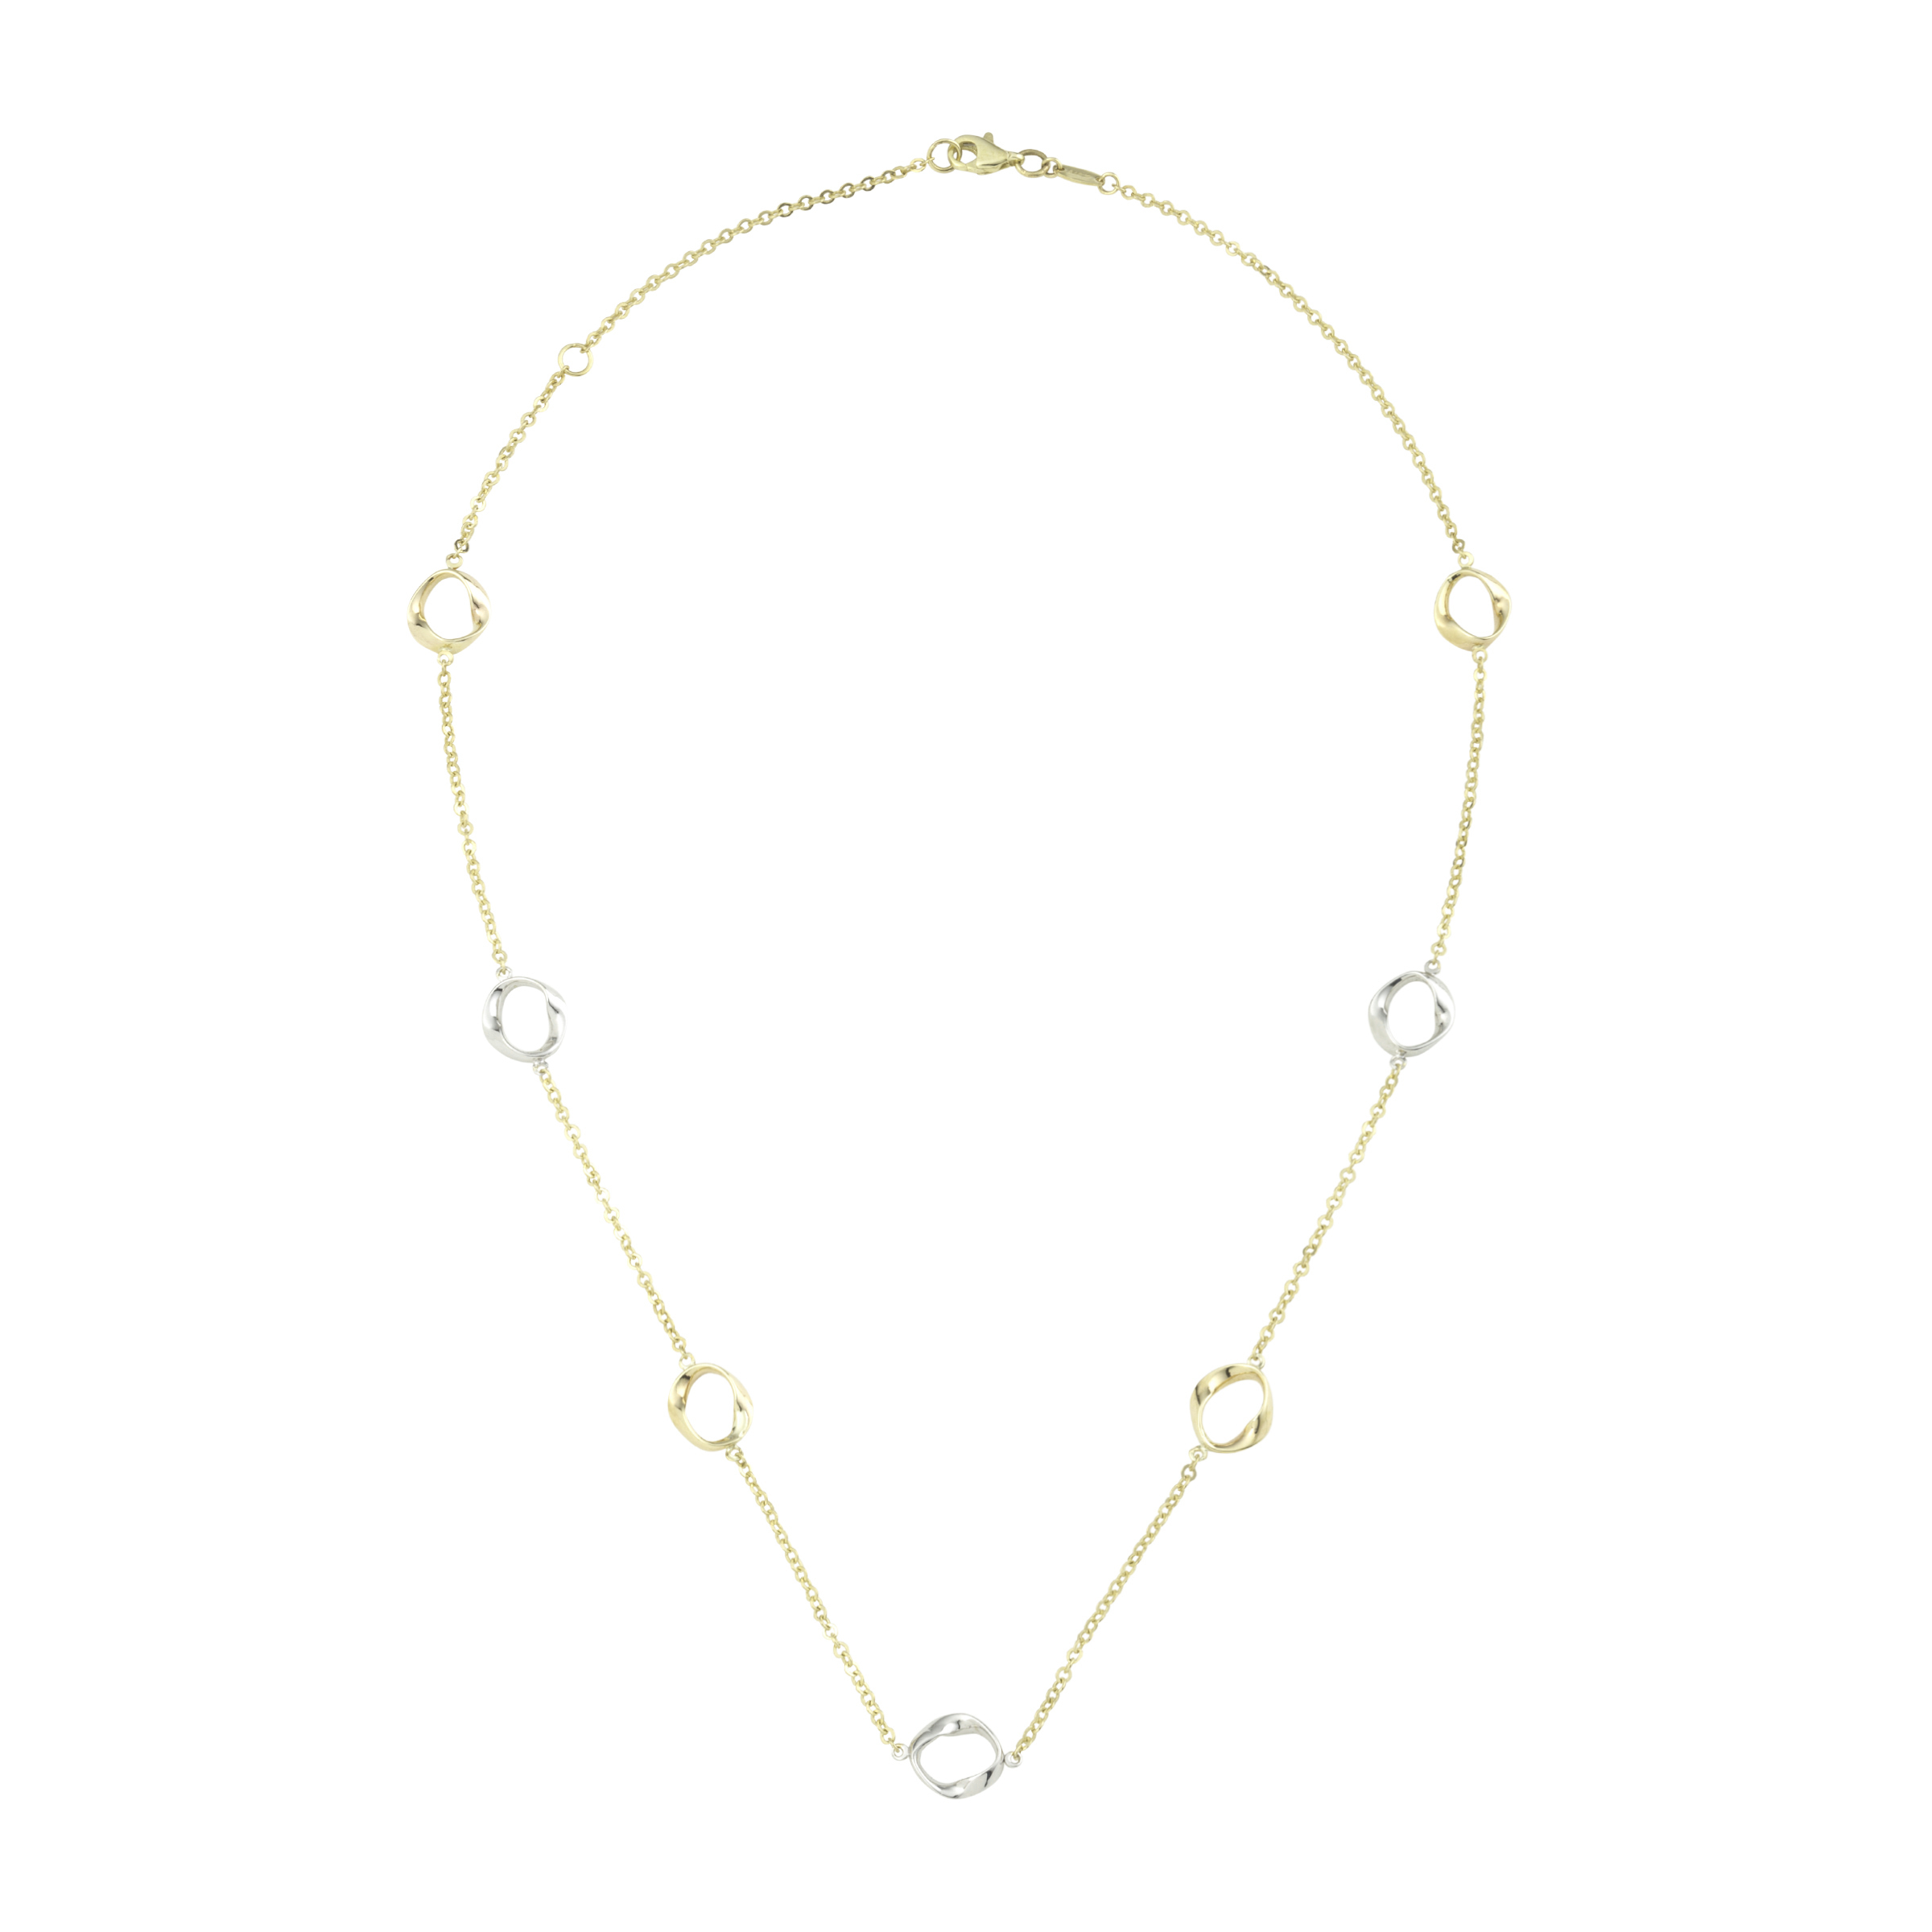 Collier für Damen, Gold 375, Fantasie